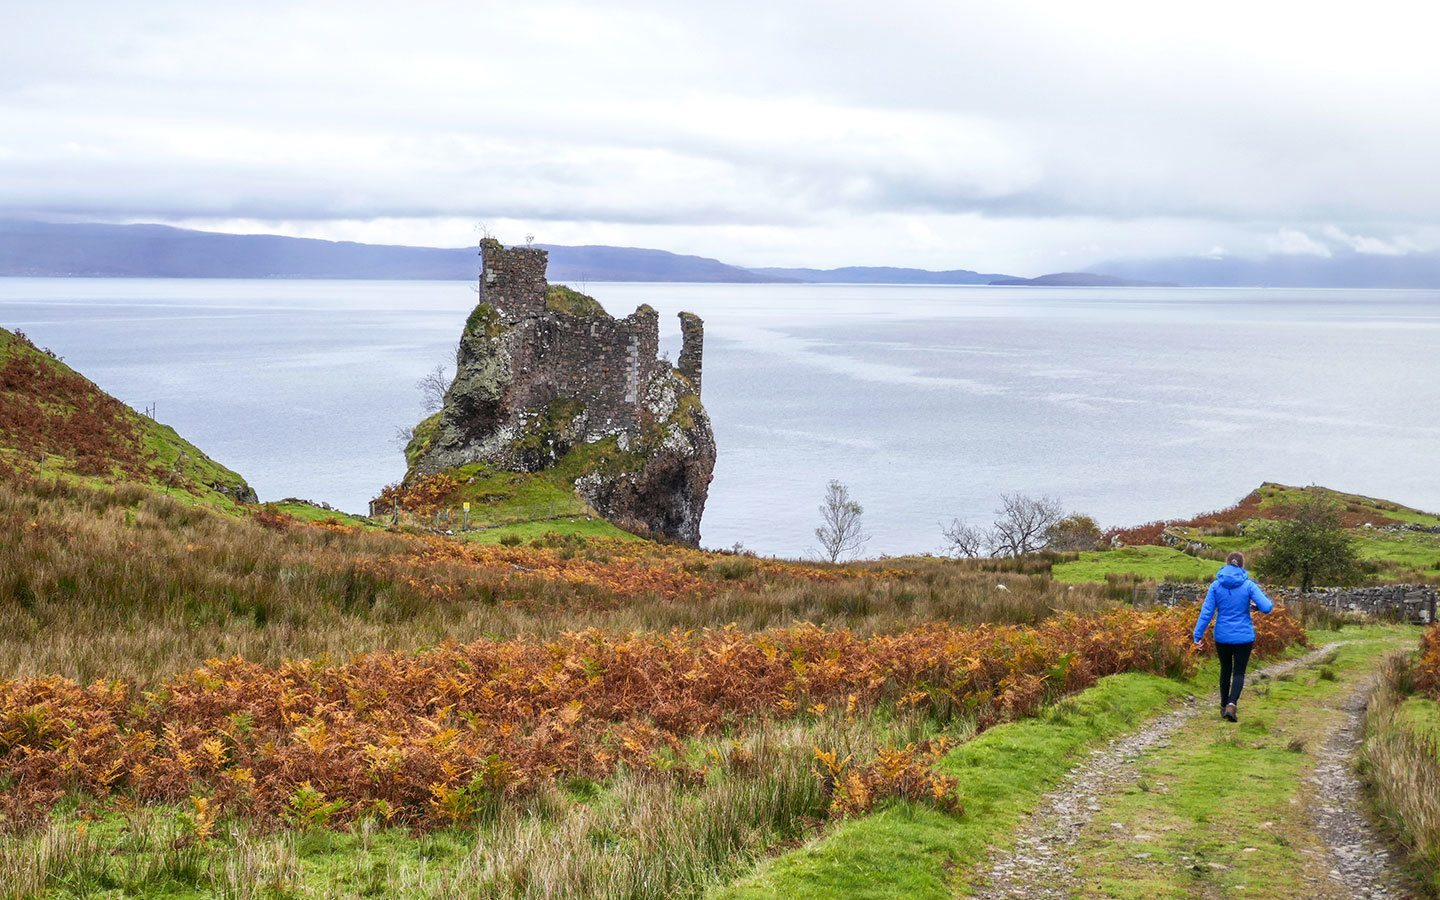 A day trip to Raasay from the Isle of Skye, Scotland